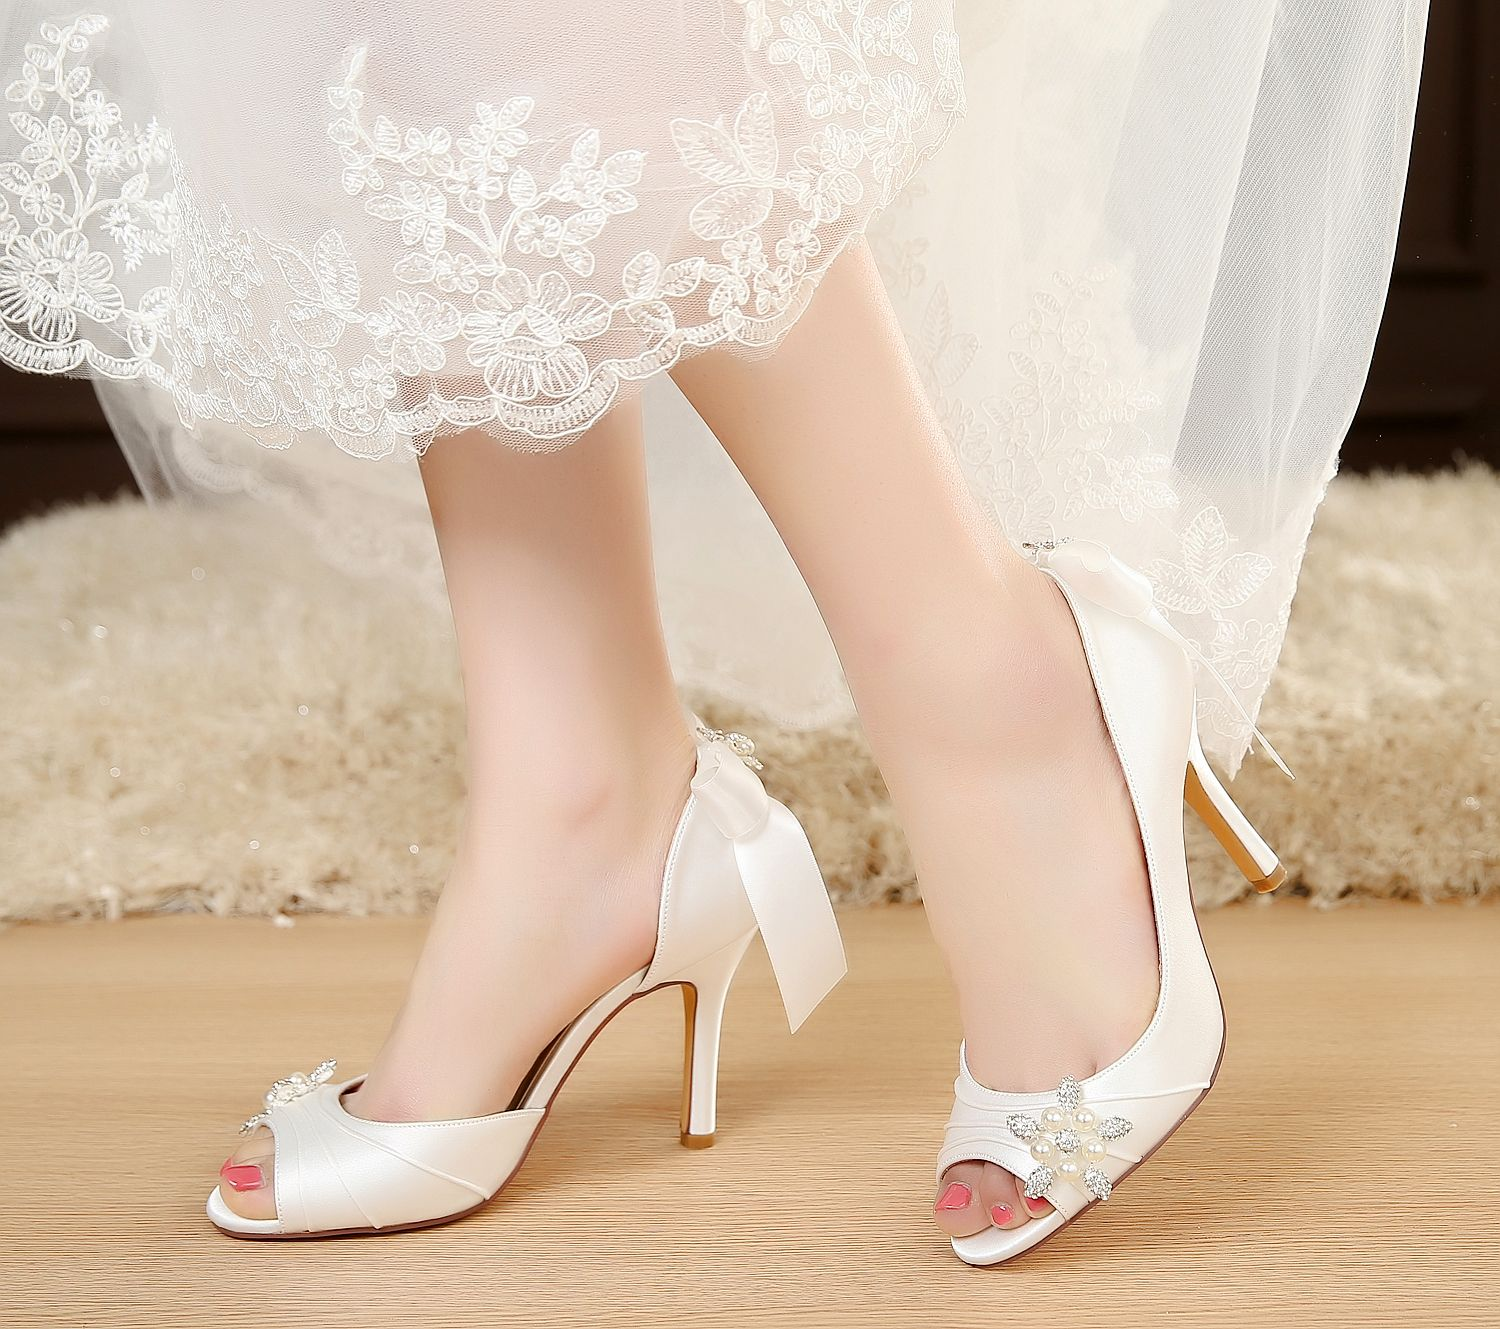 Pin By Ashley Neeley On Dream Wedding Wedding Shoes Low Heel Bride Shoes Womens Wedding Shoes